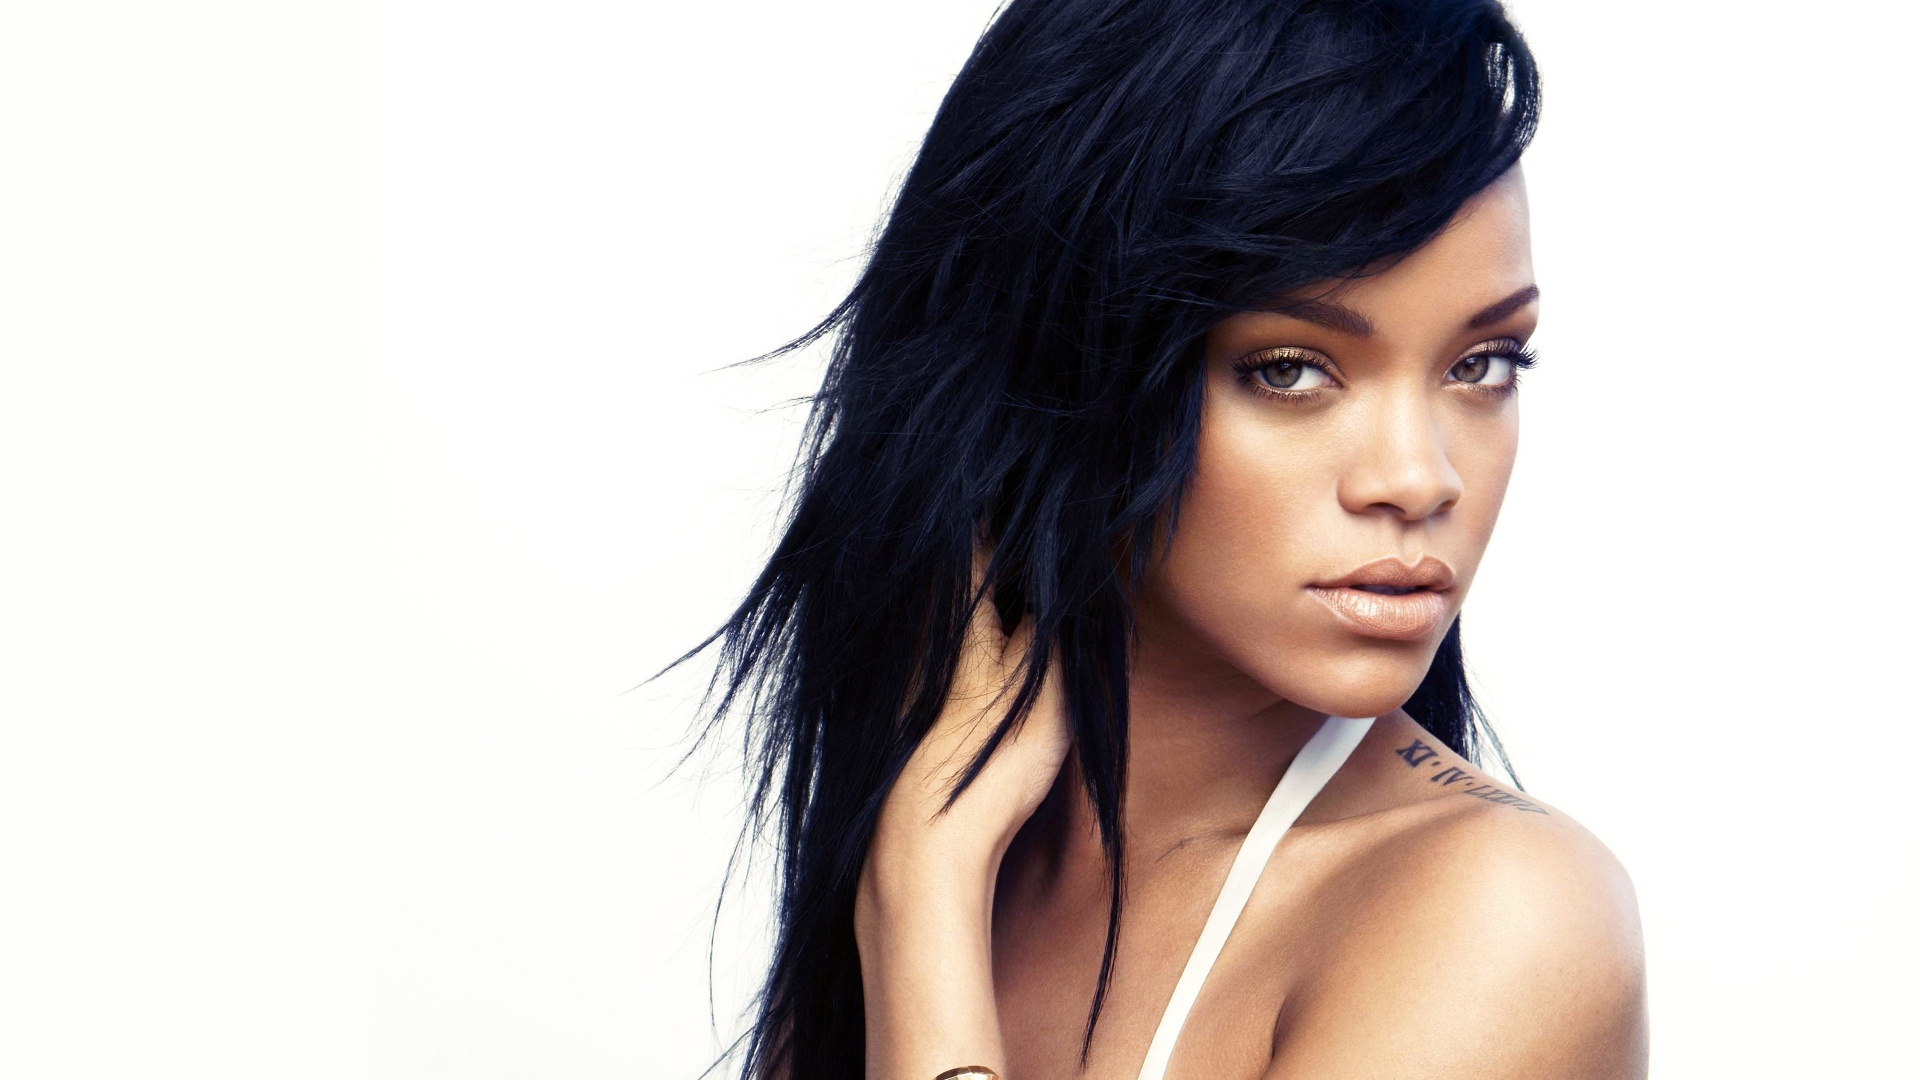 rihanna wallpapers hd A9